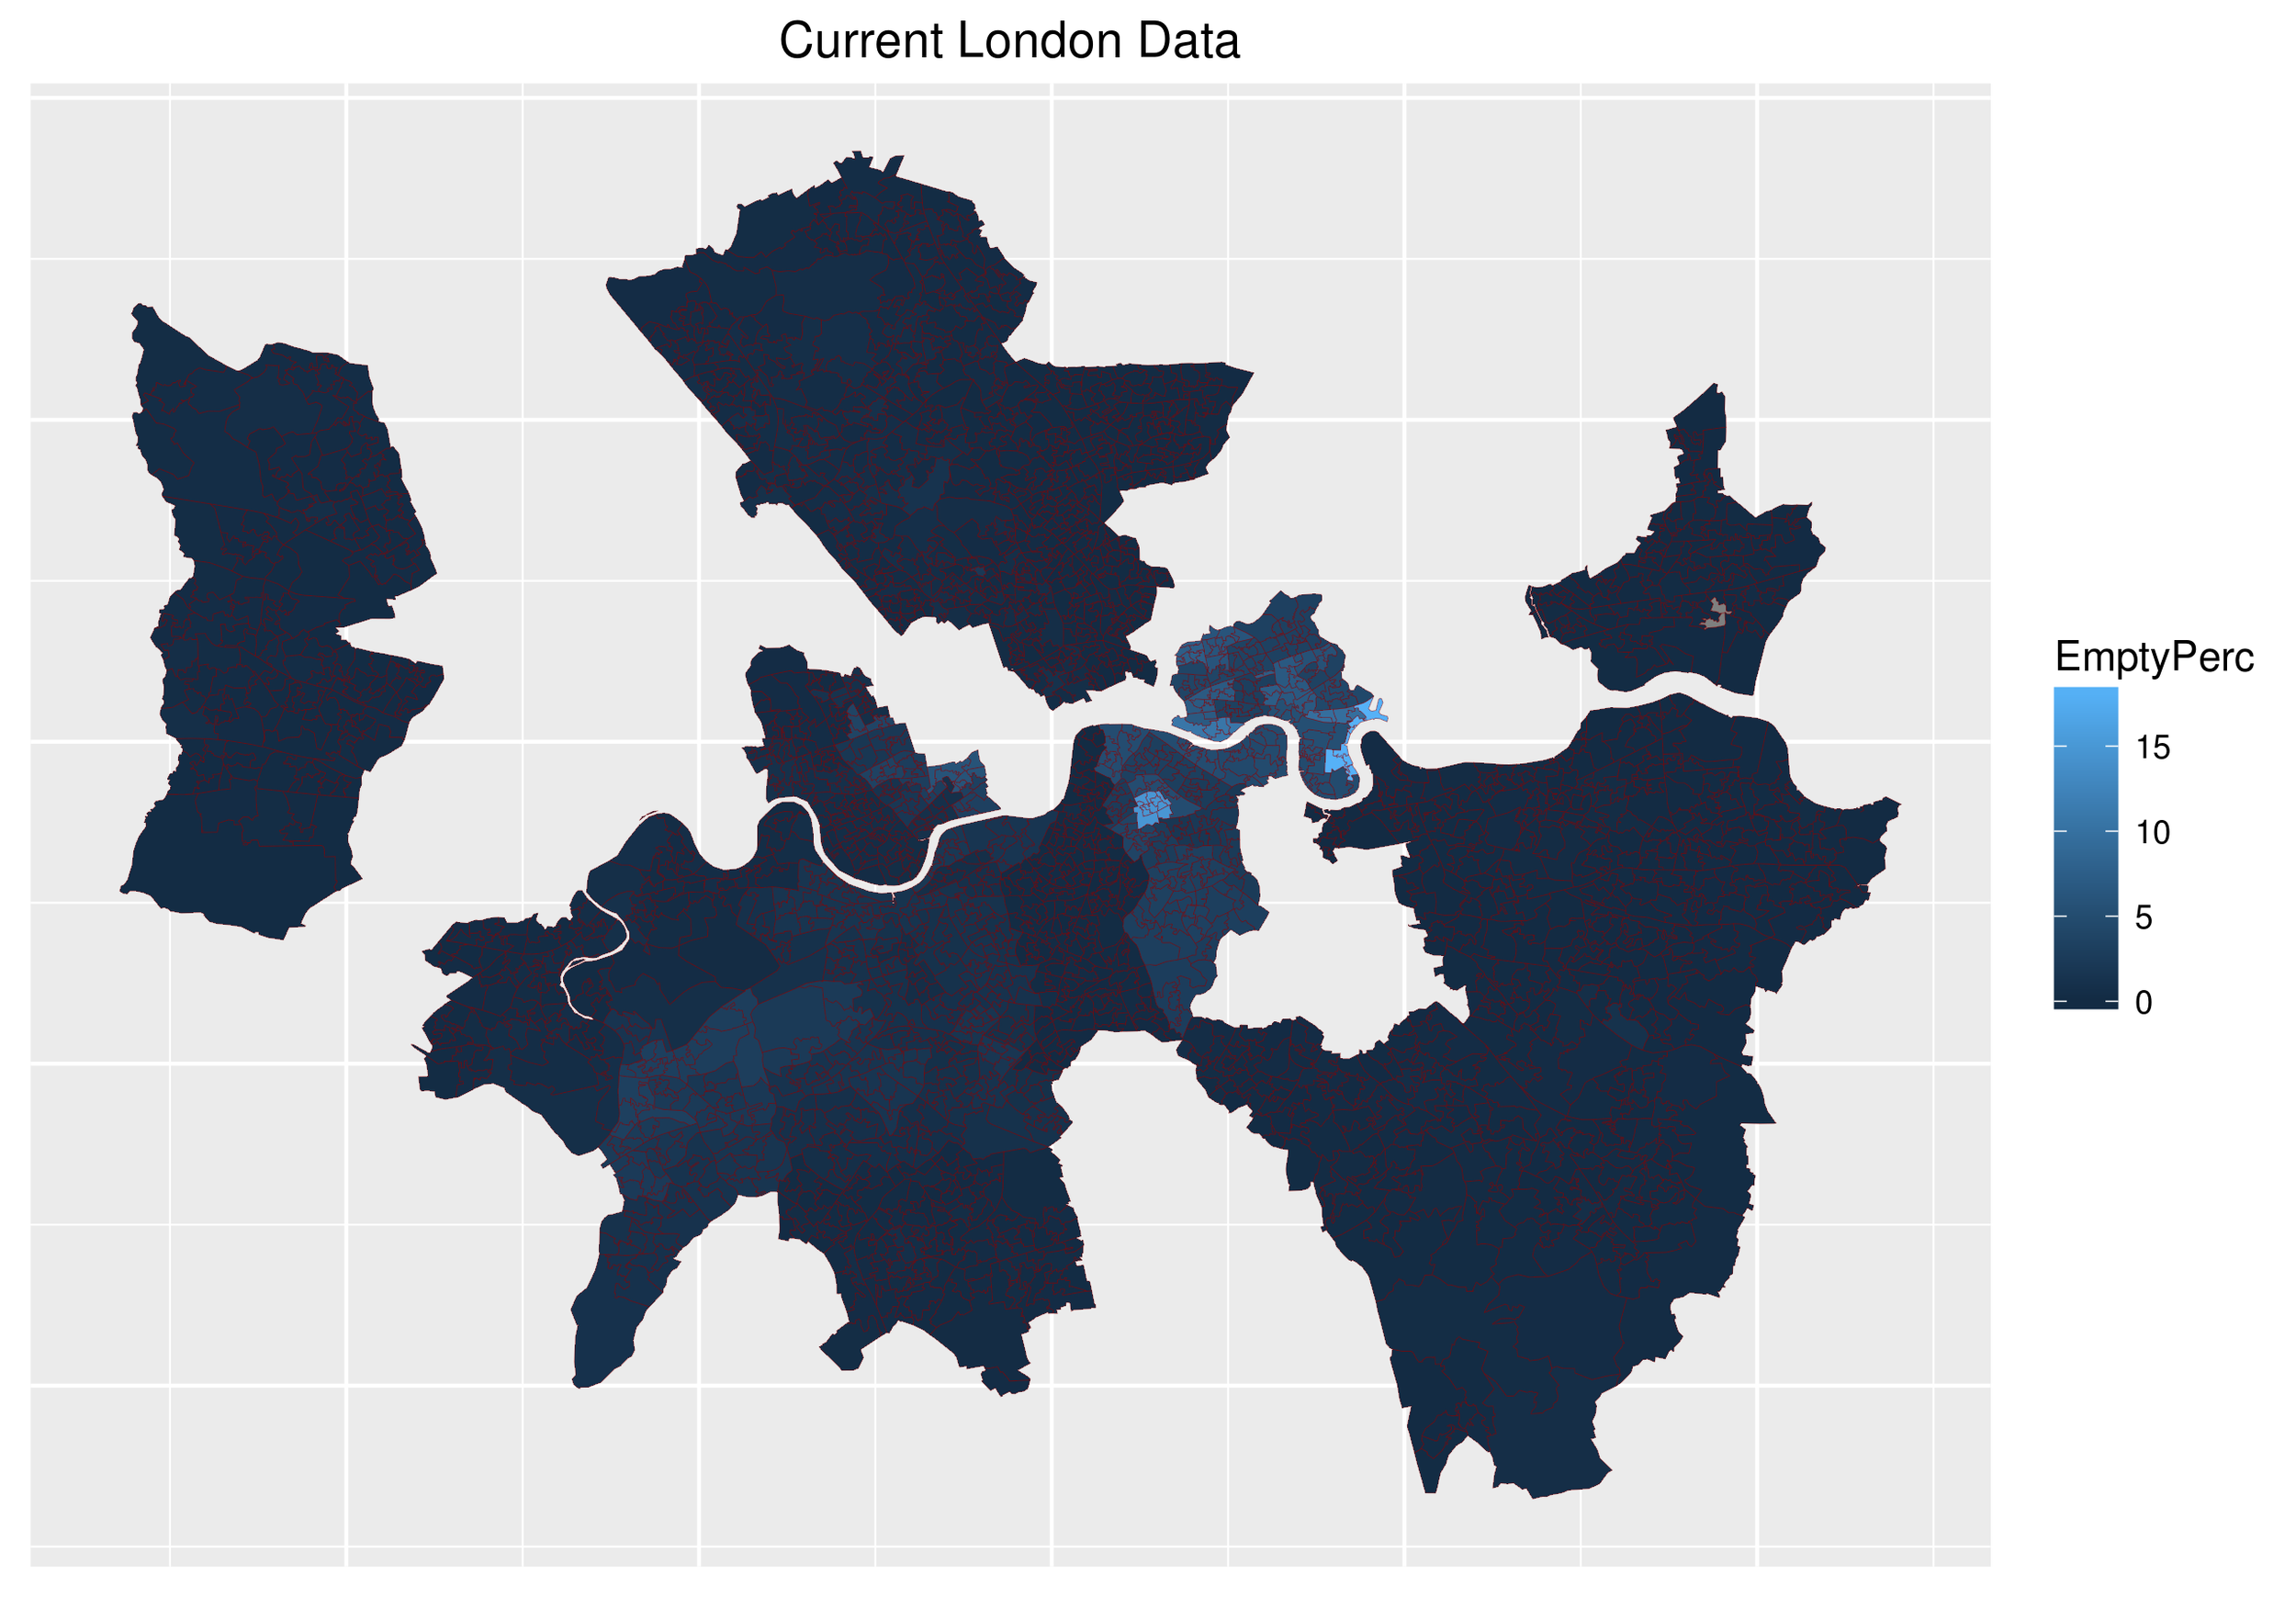 This figure shows the current state of data from the London Boroughs.